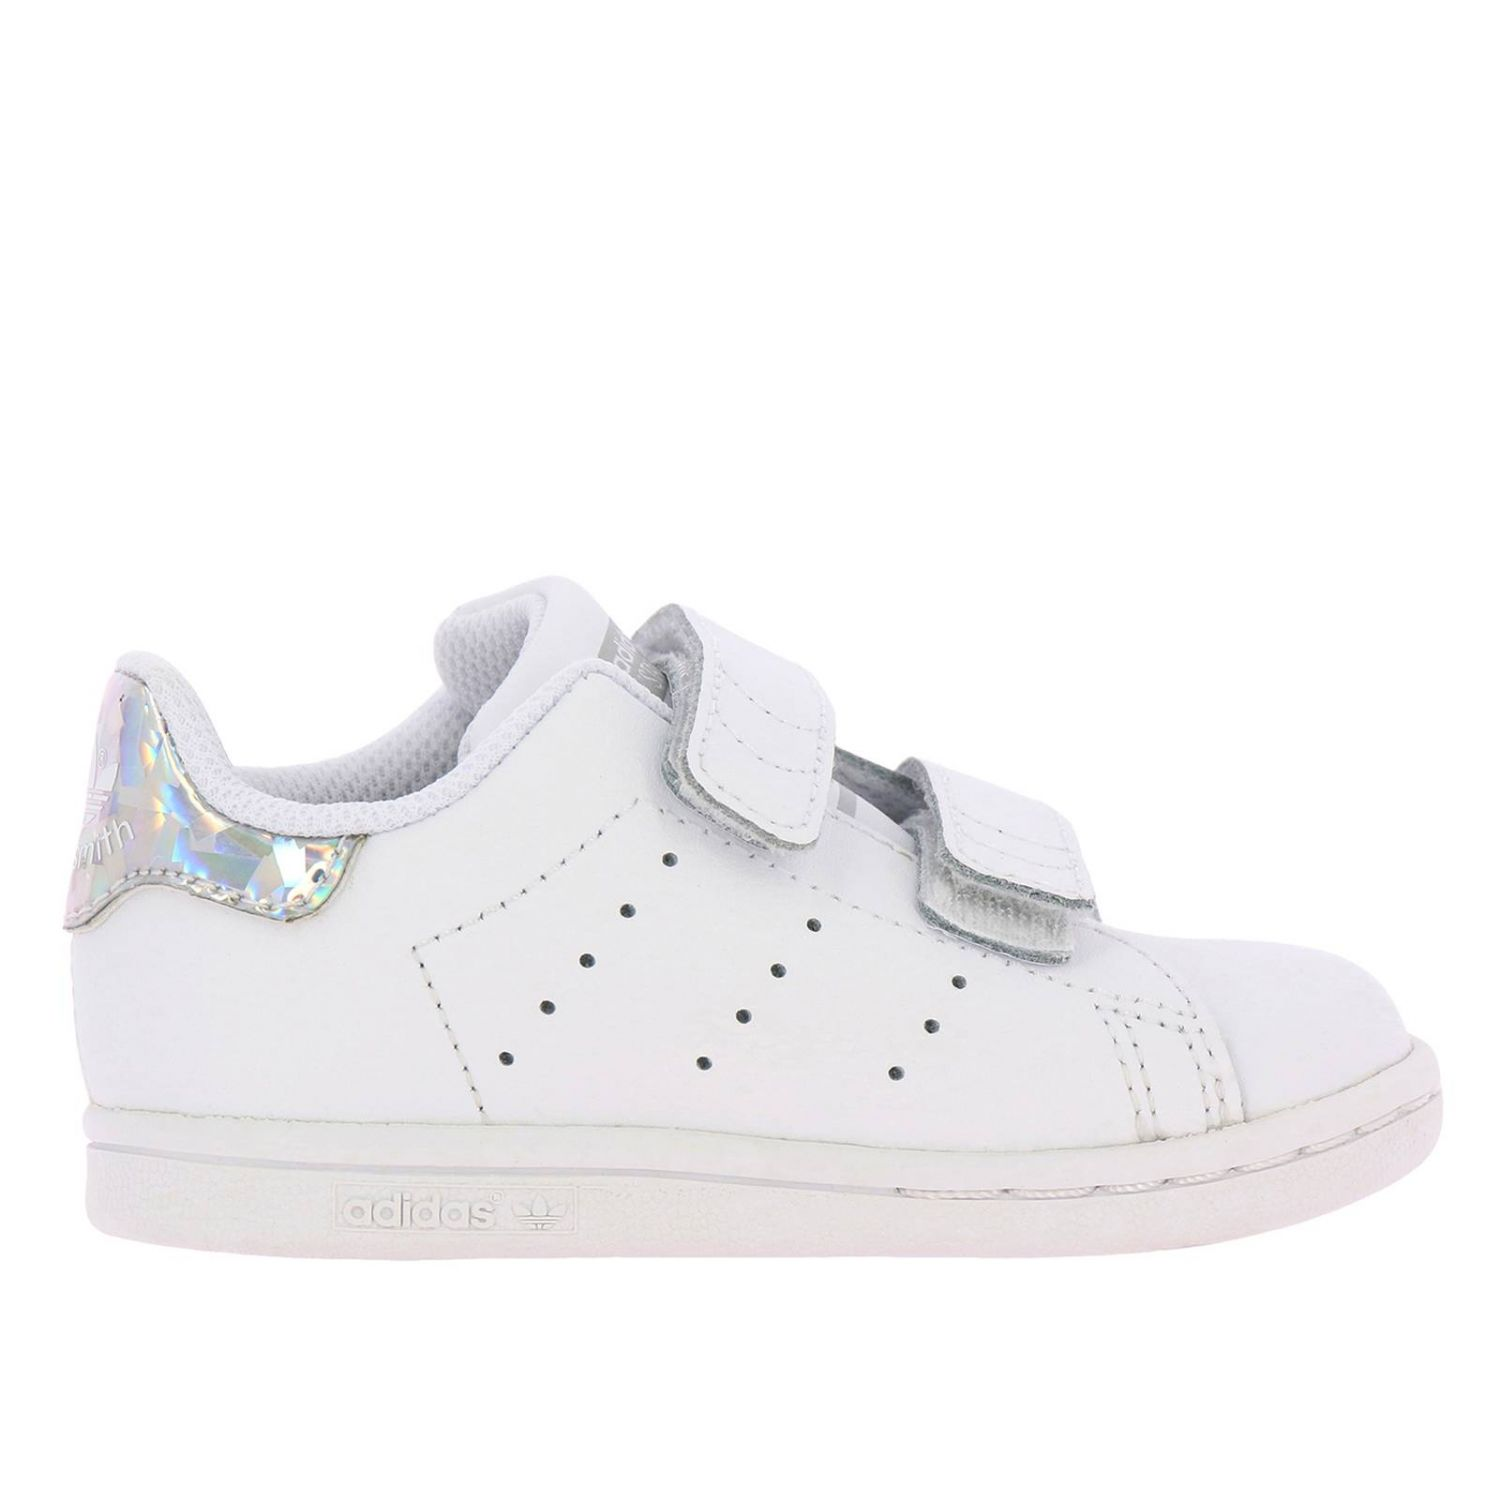 Shoes Adidas Originals: Stan Smith Adidas Originals Sneakers in smooth leather with mirrored heel white 1